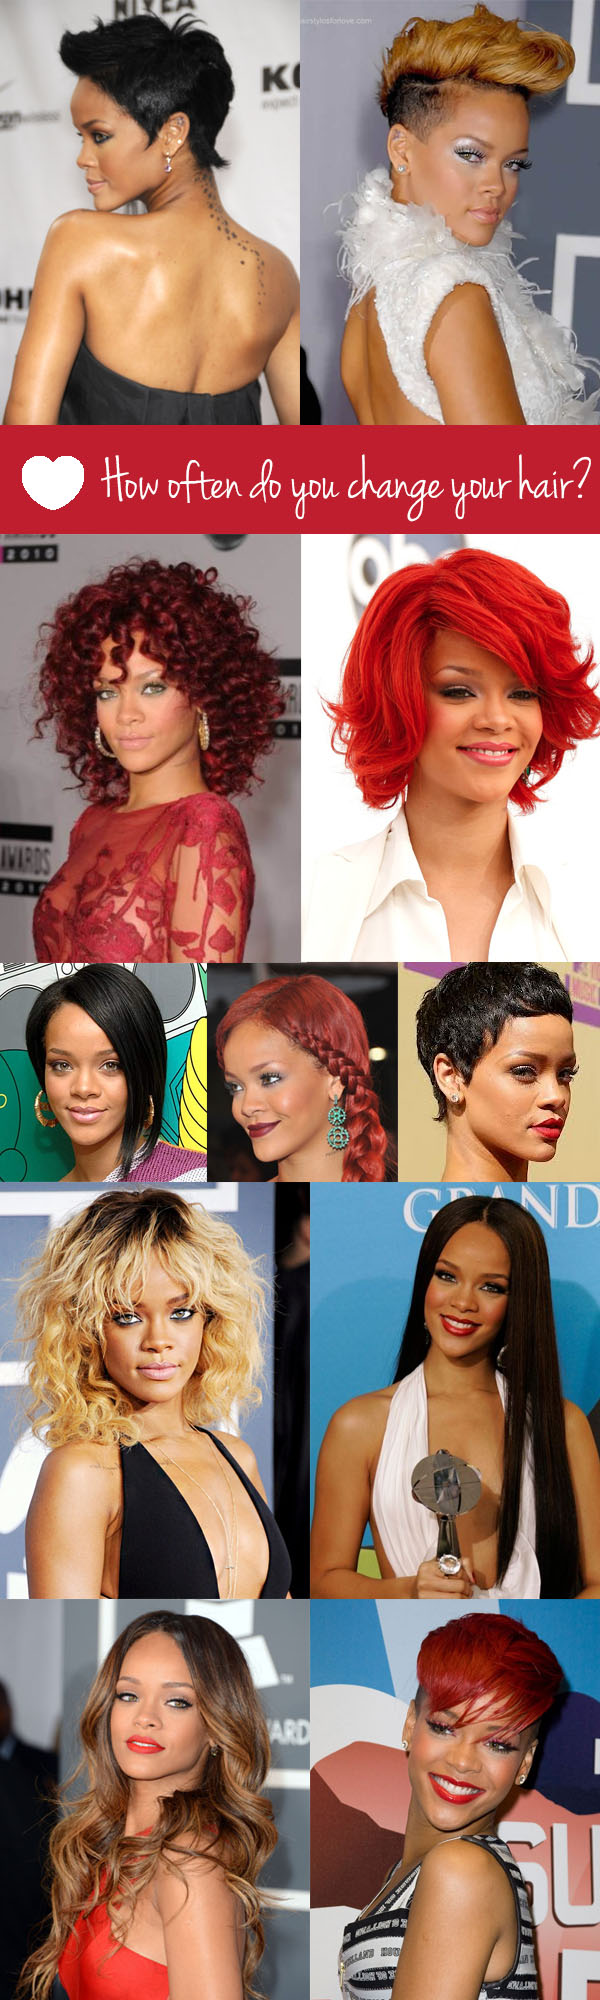 Rihanna has more hair changes than hot dinners